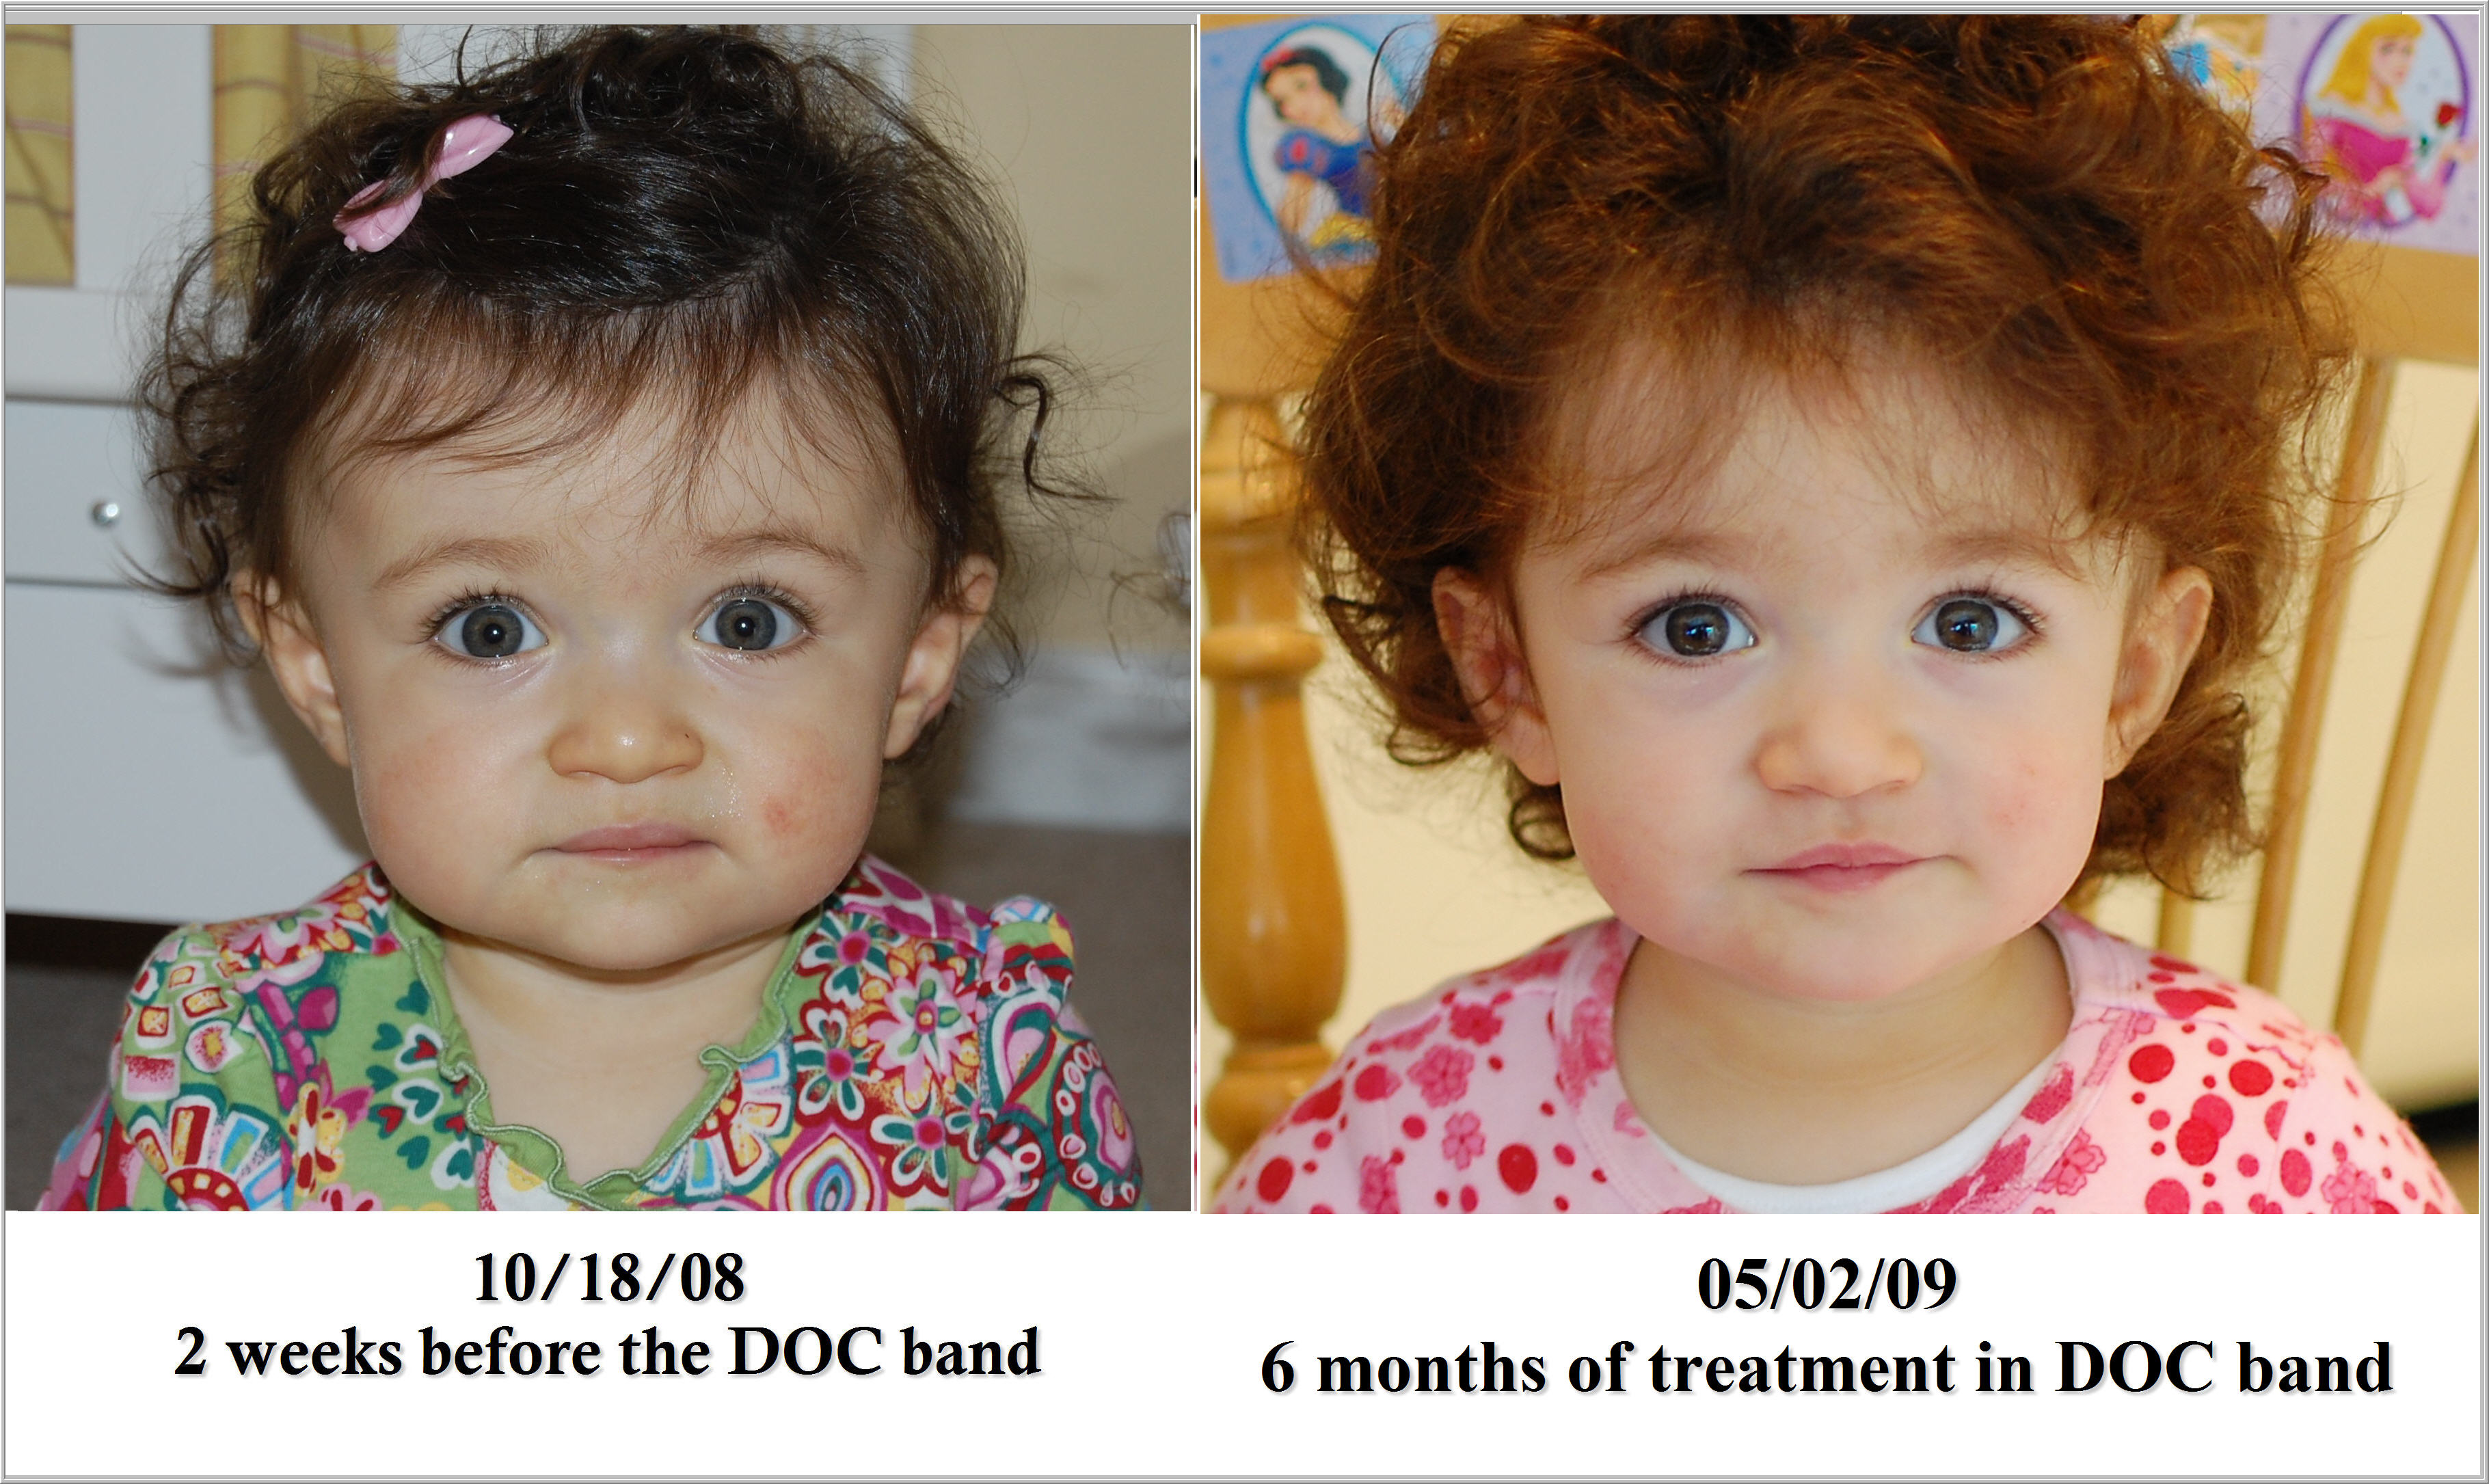 head-width-comparision-3-six-months-in-doc-bands1